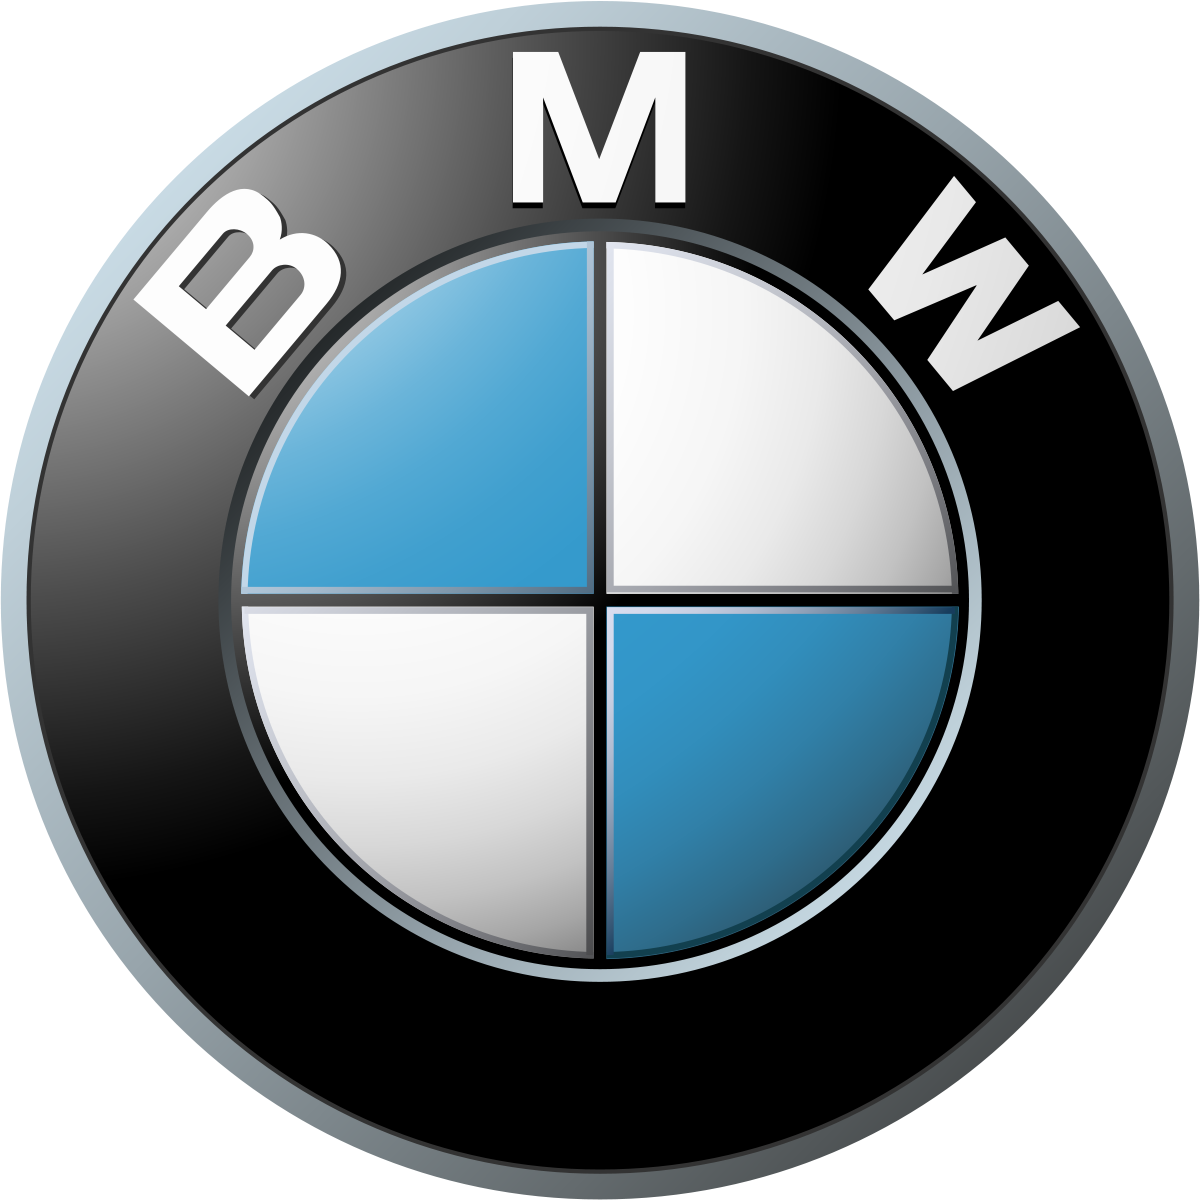 attachment-1574170568-bmwlogo.png